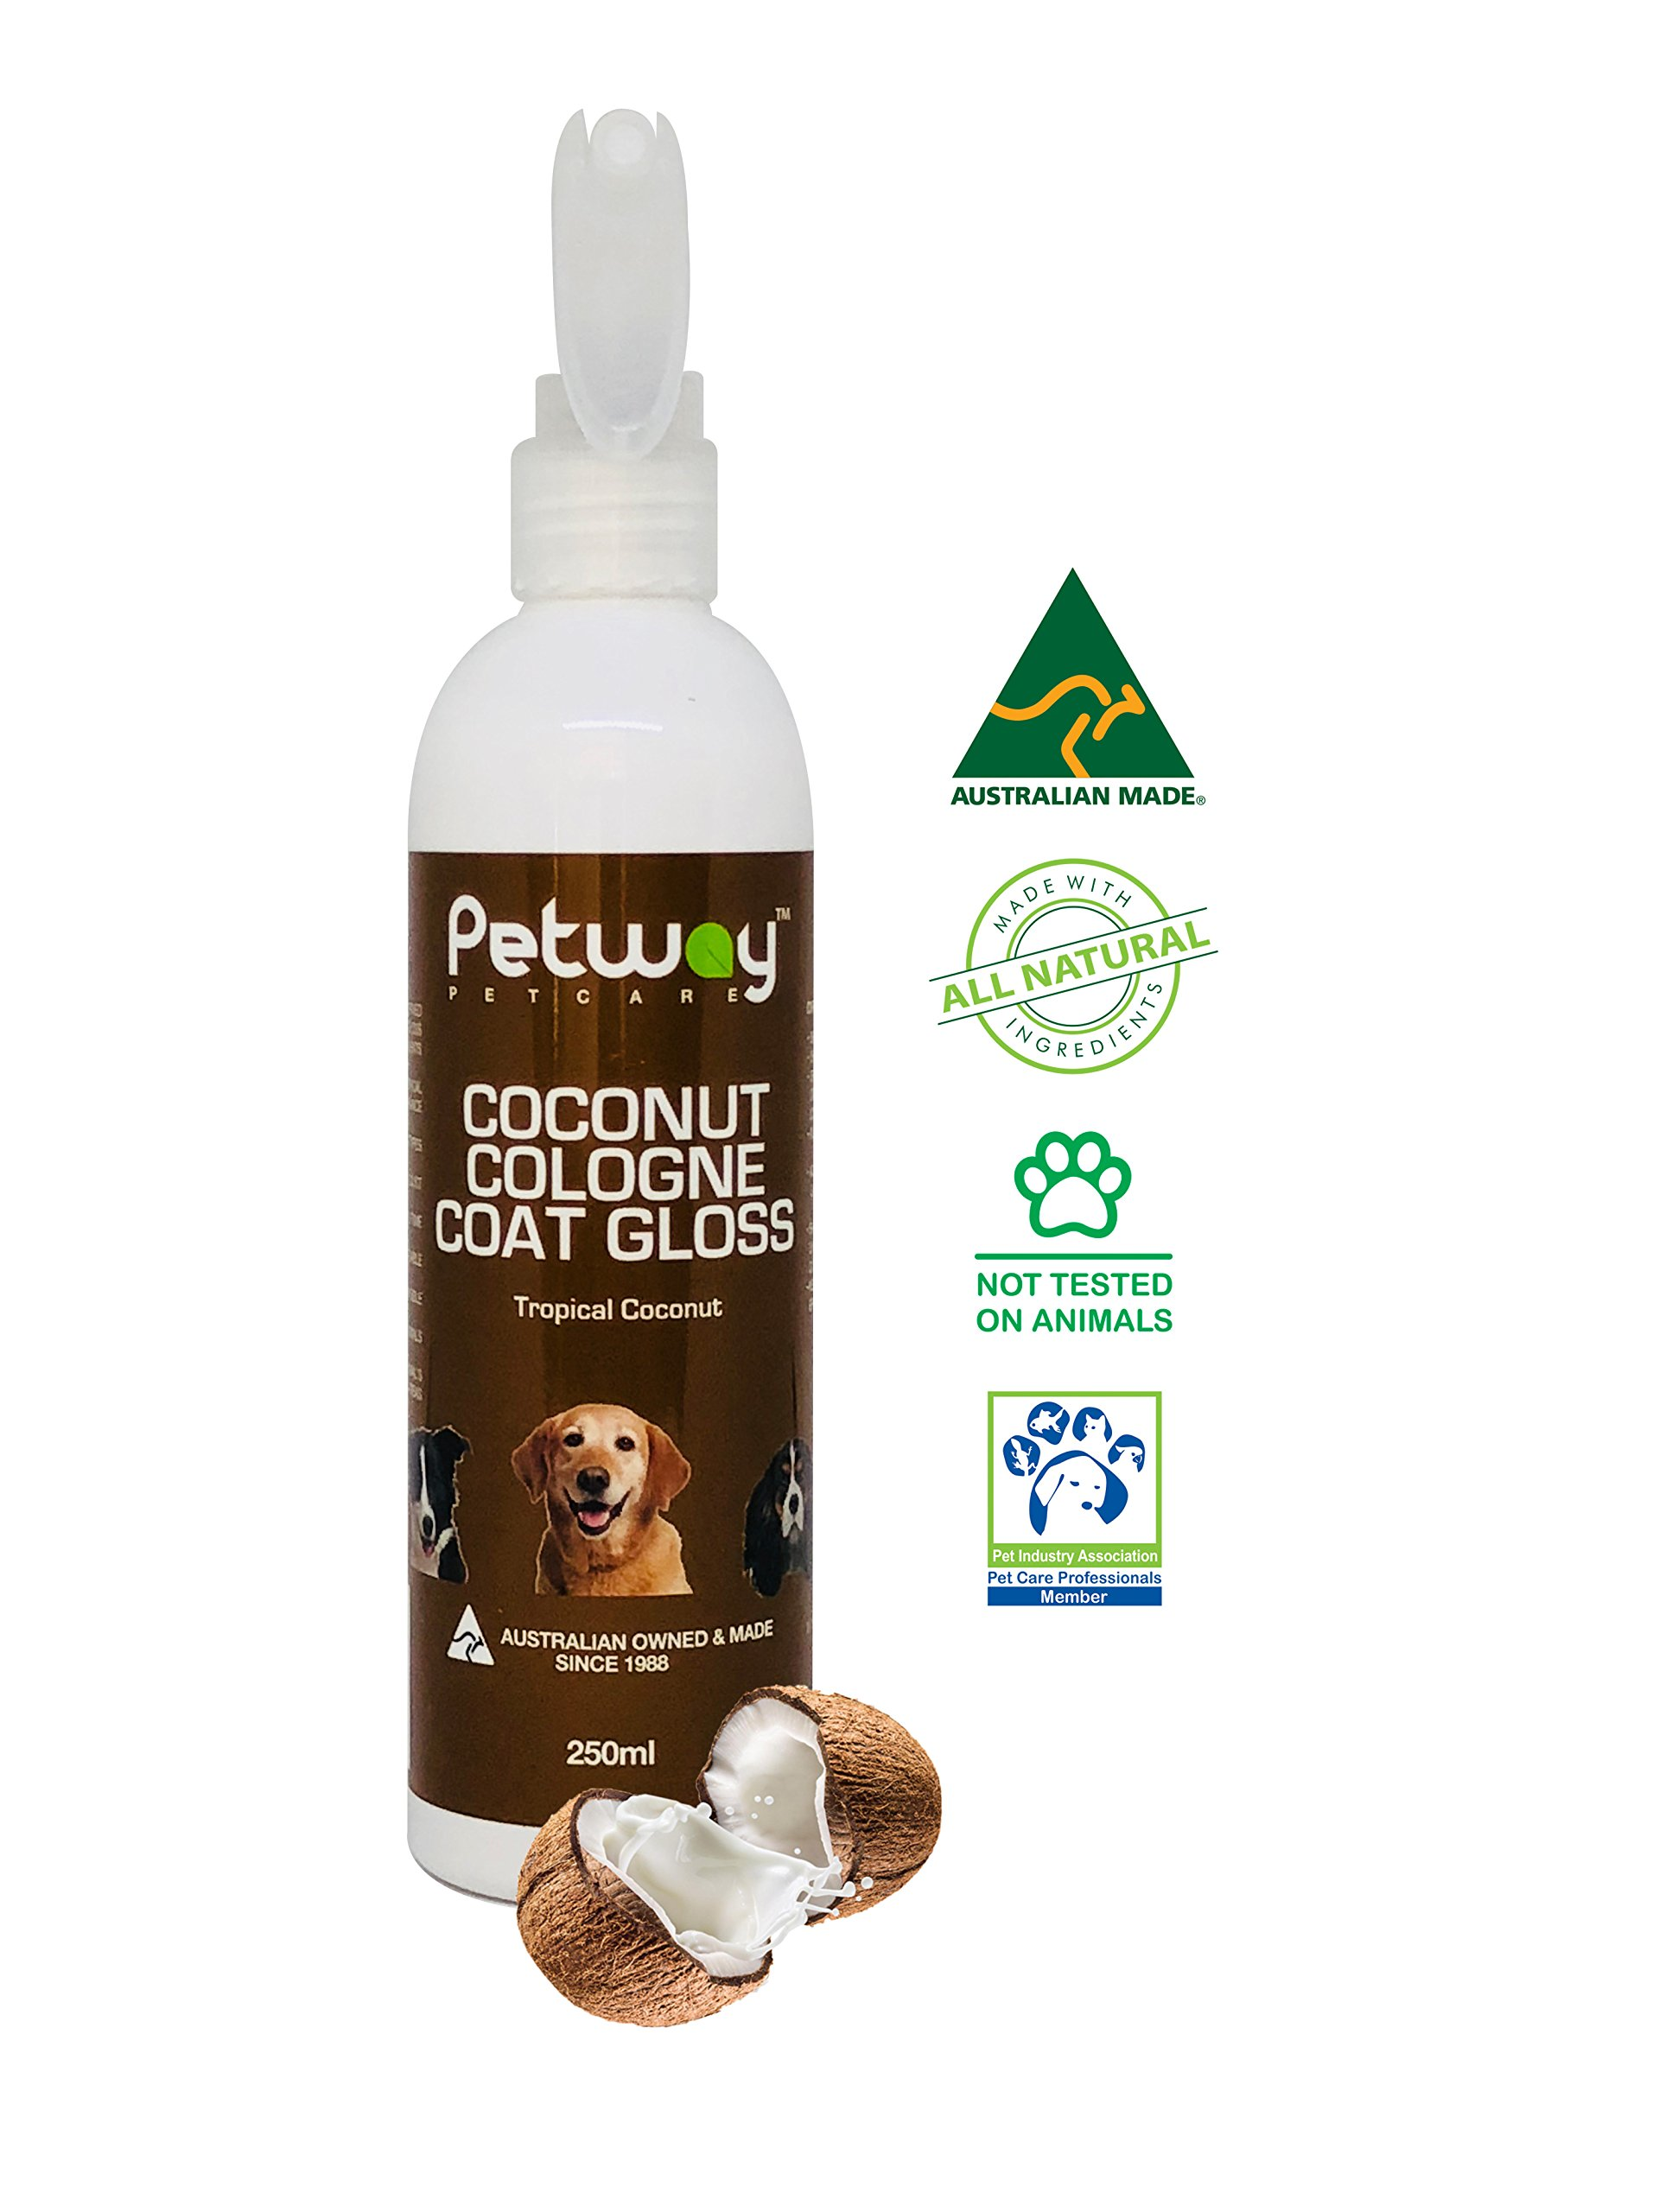 PETWAY Petcare Coconut Cologne Coat Gloss - Natural Cosmetic Dog Cologne Spray with Coconut for Conditioning Qualities, Dog Gloss with Deodorizer, Pet Odor Eliminator and Dog Grooming Spray - 250ml